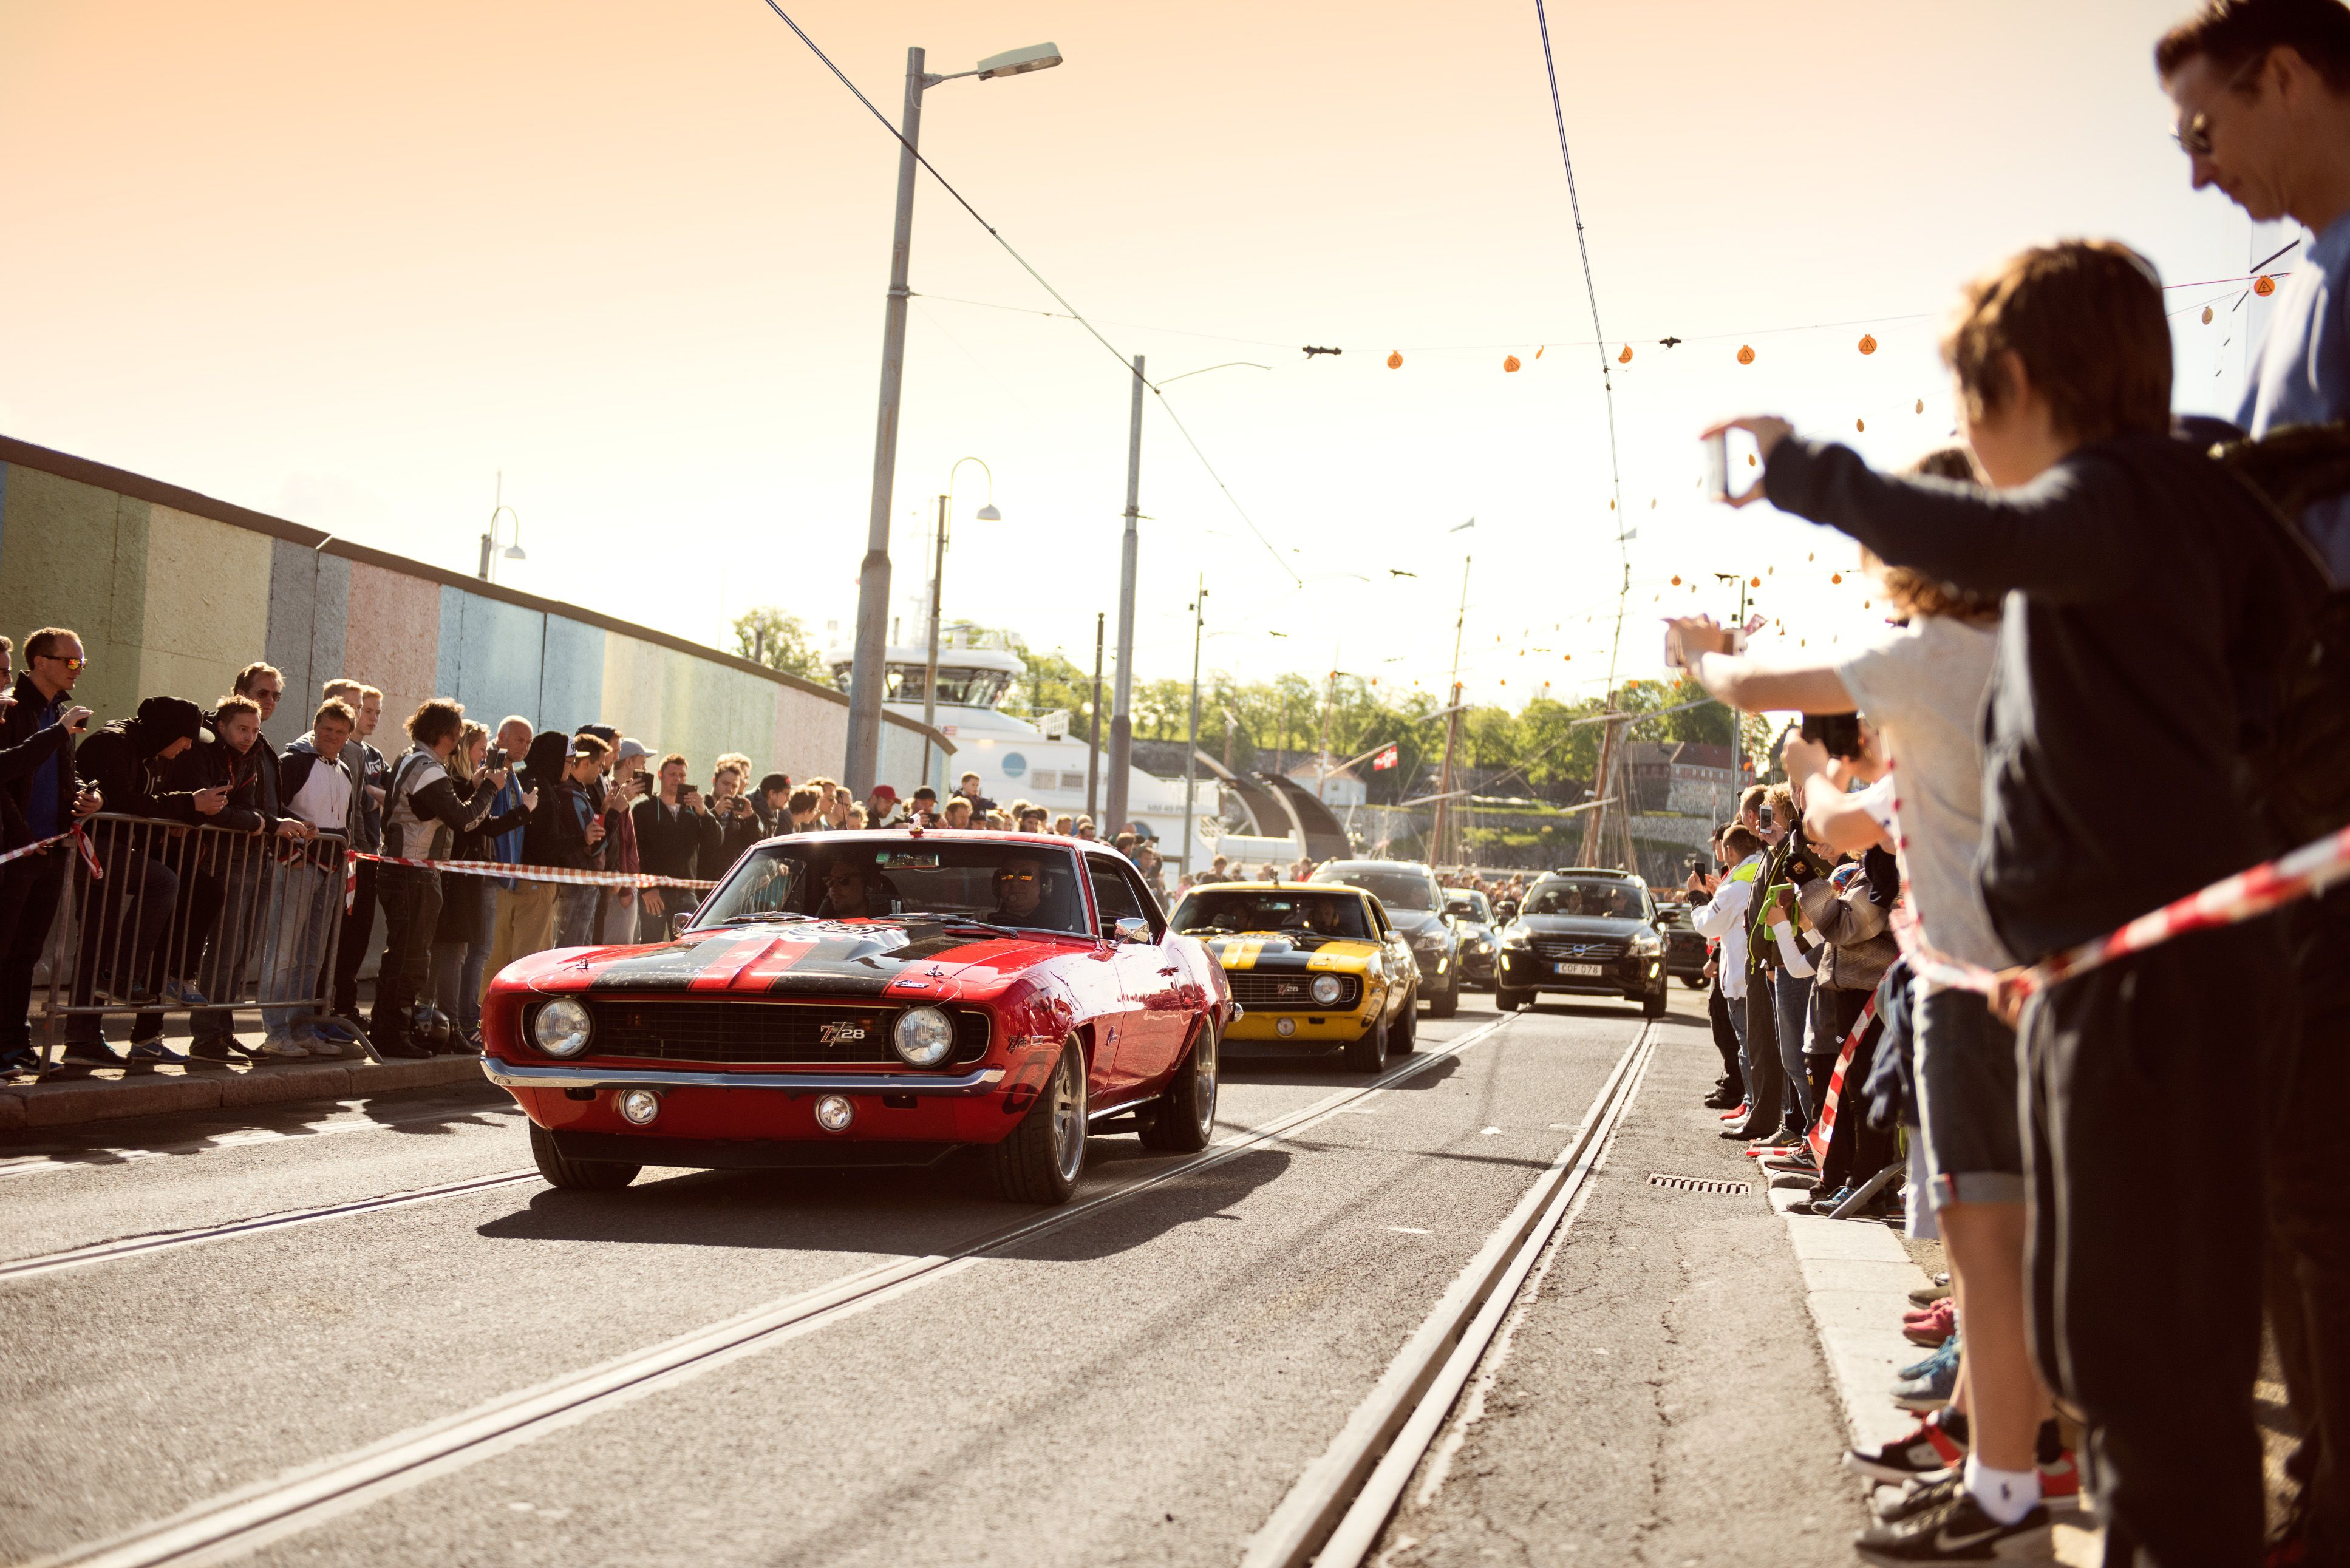 Our '69 Z/28 Camaros at the Gumball 3000 rally. #DreamCars #AmericanMuscle